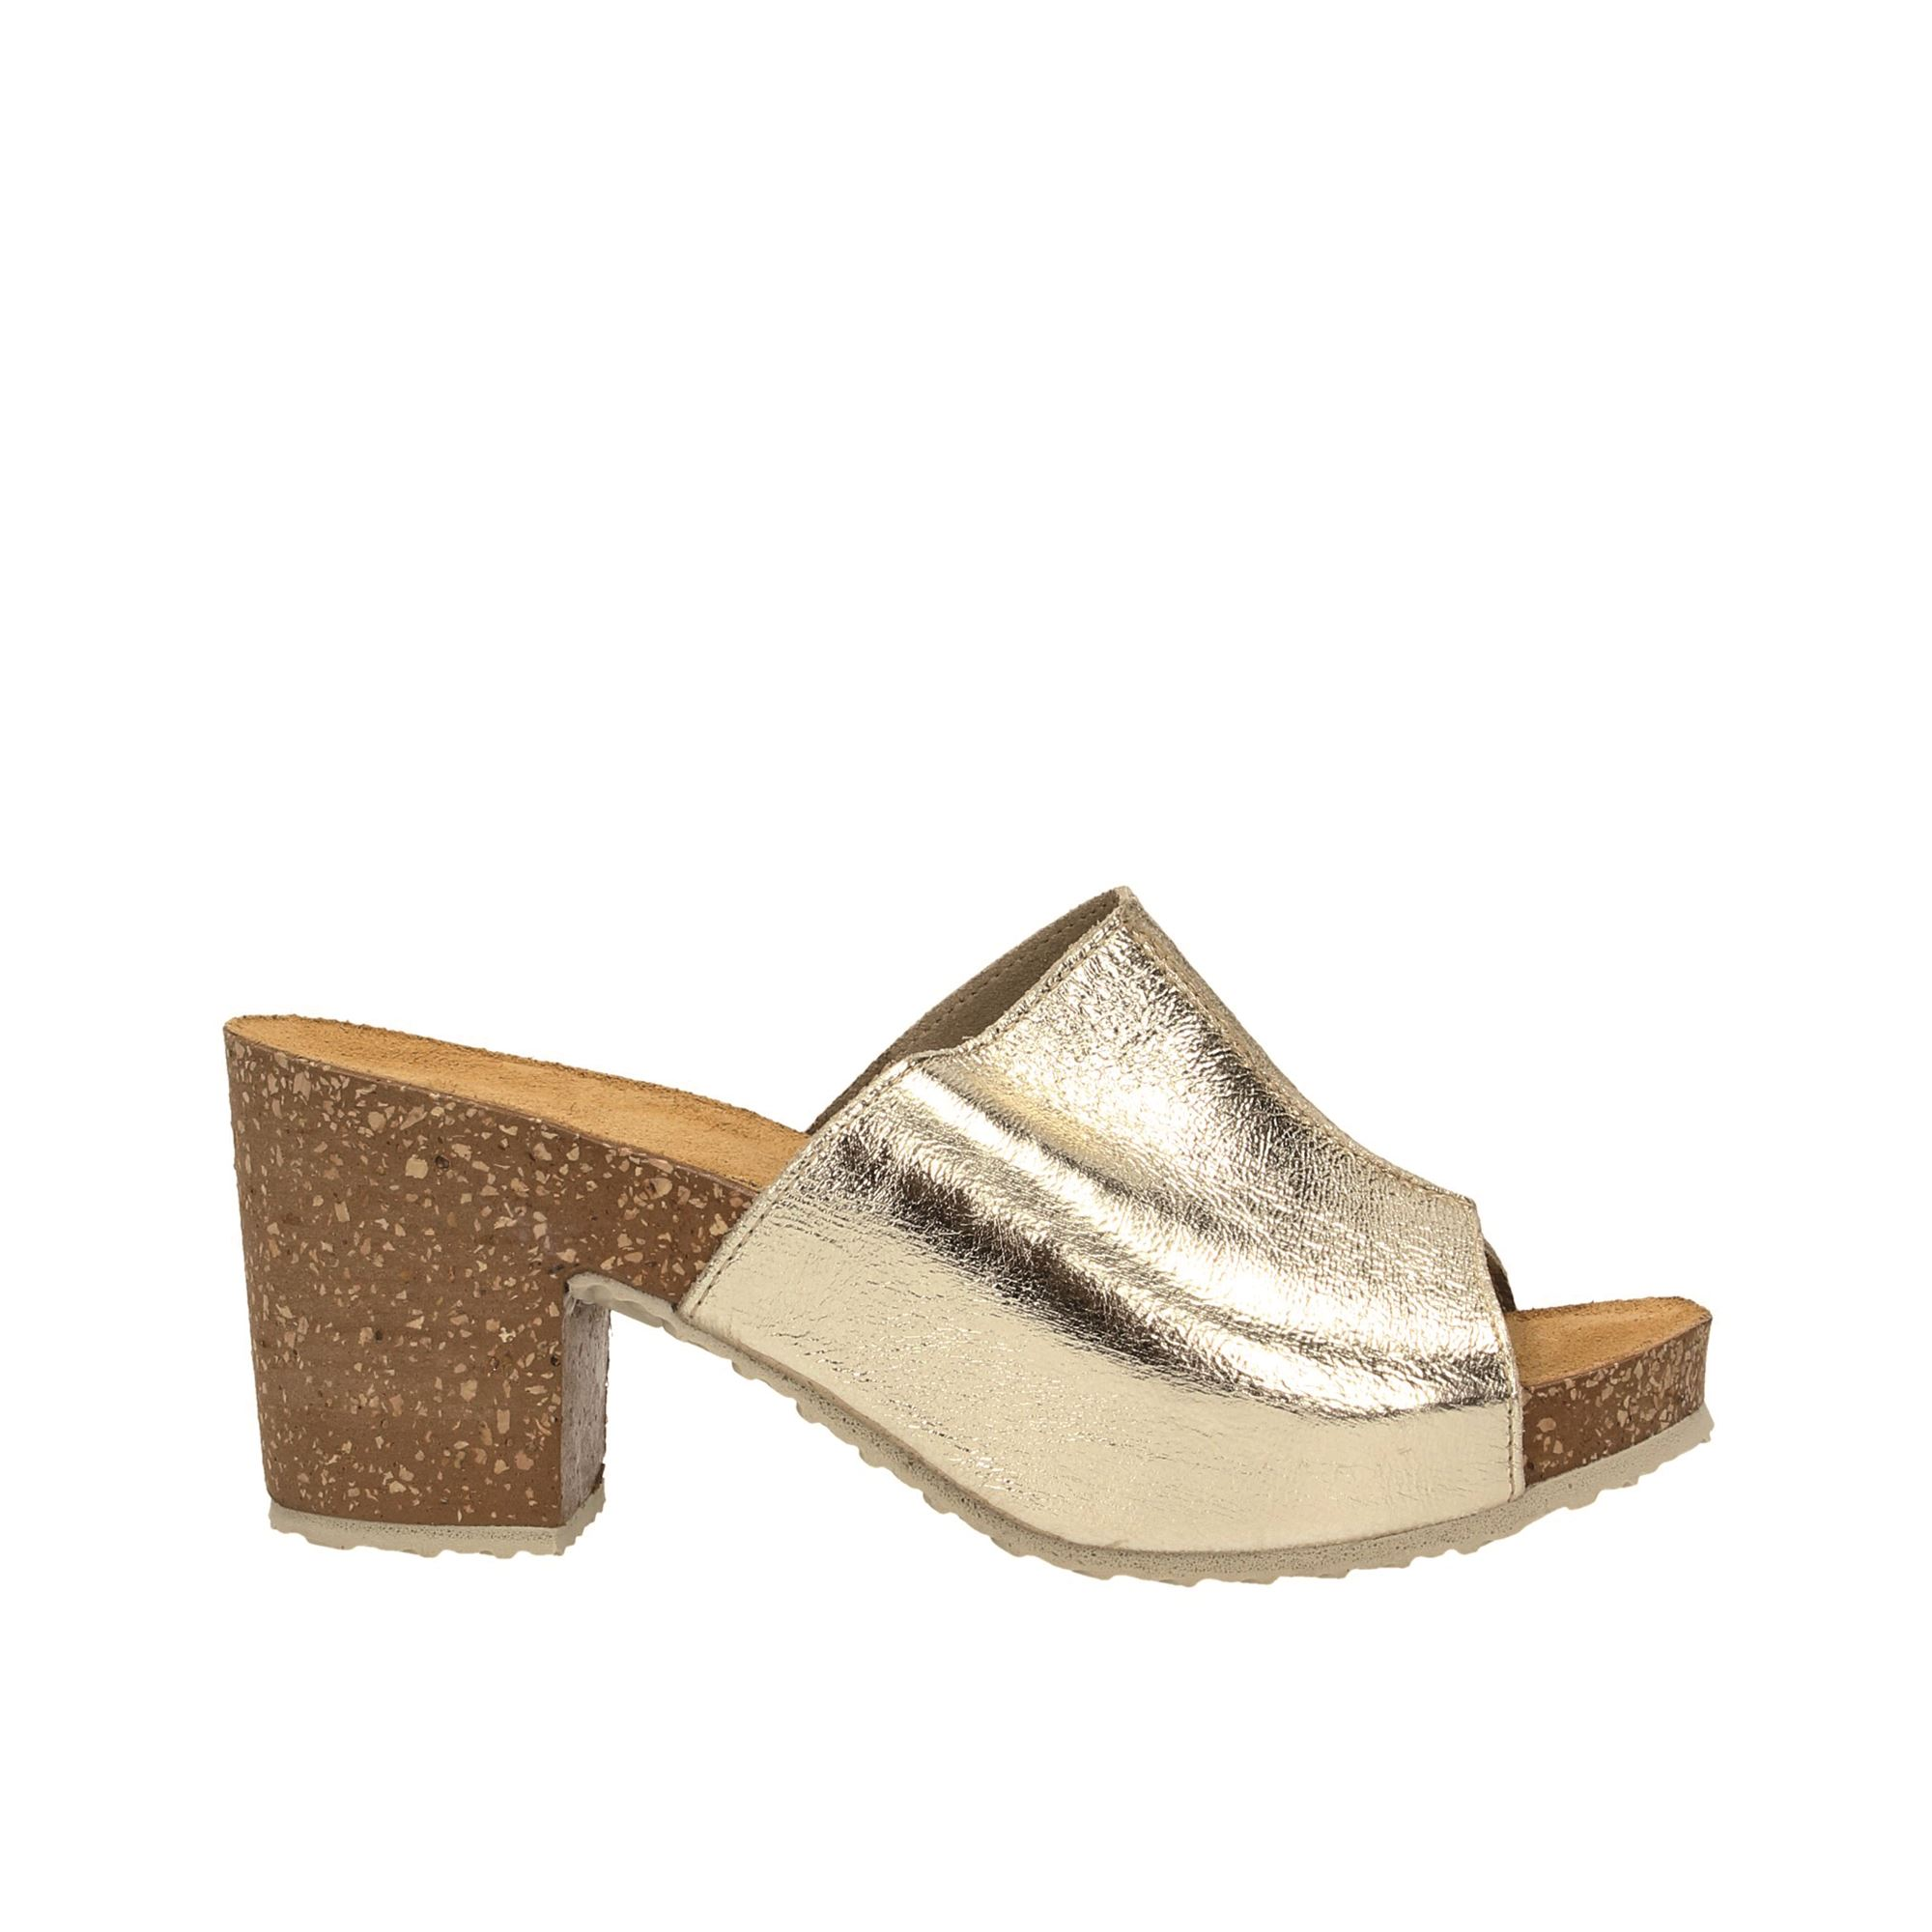 Tata Italia Shoes Woman Sandali Gold 281220